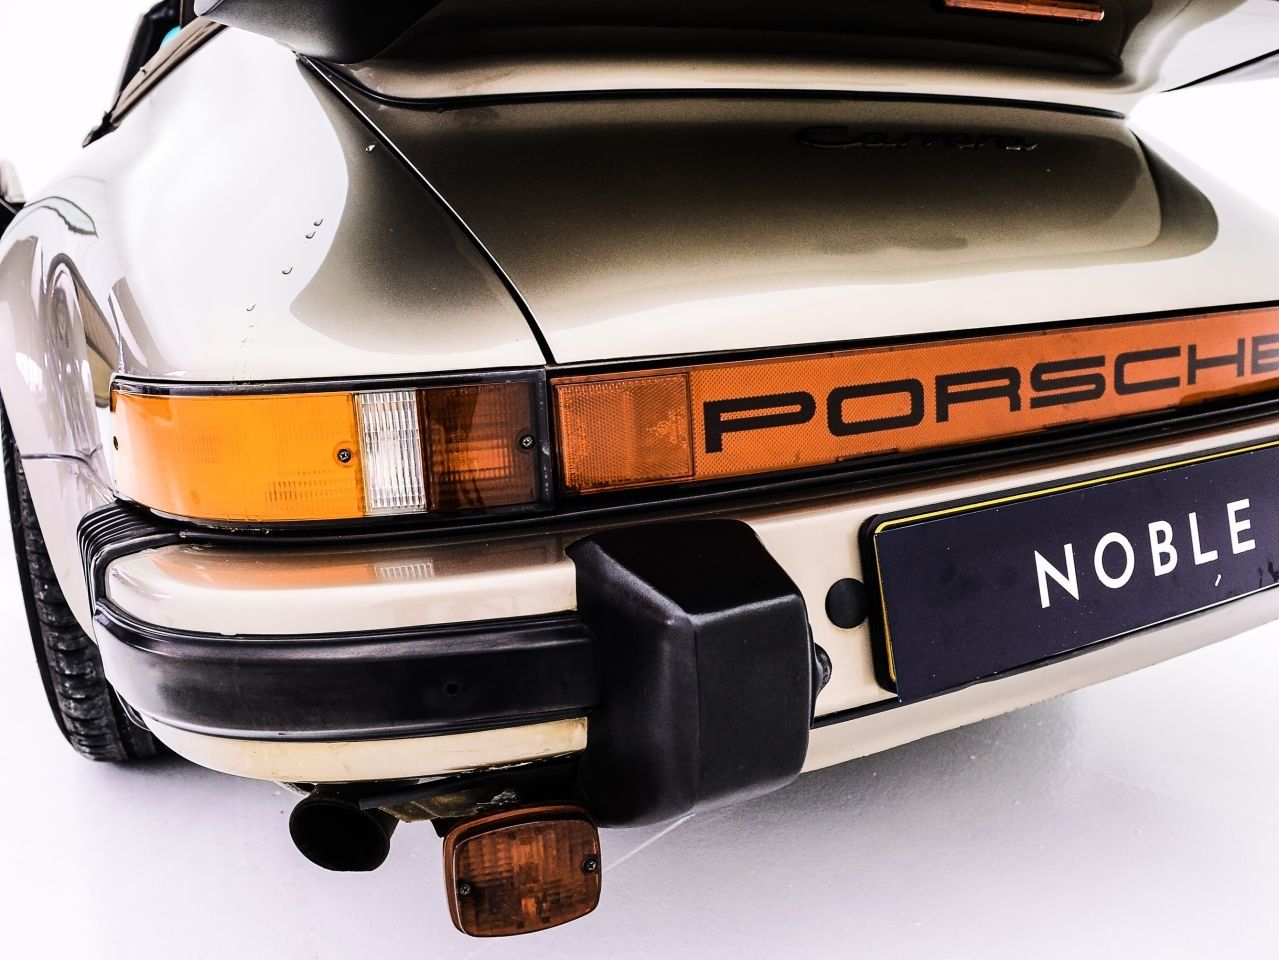 1984 PORSCHE 911 3.2 CARRERA CABRIOLET For Sale by Auction (picture 4 of 6)